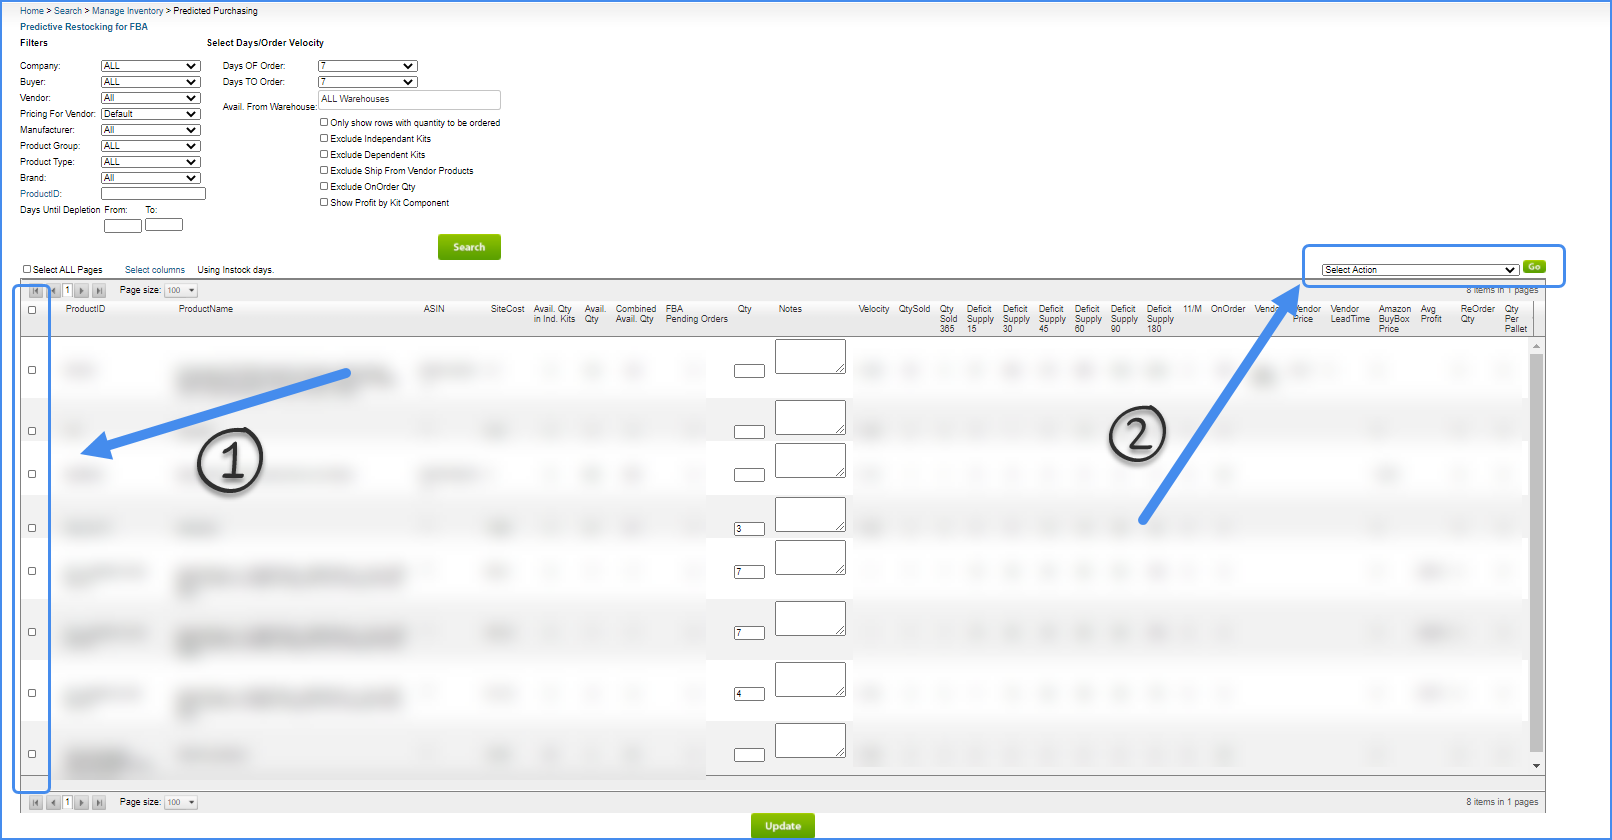 sellercloud predictive purchasing export file excel